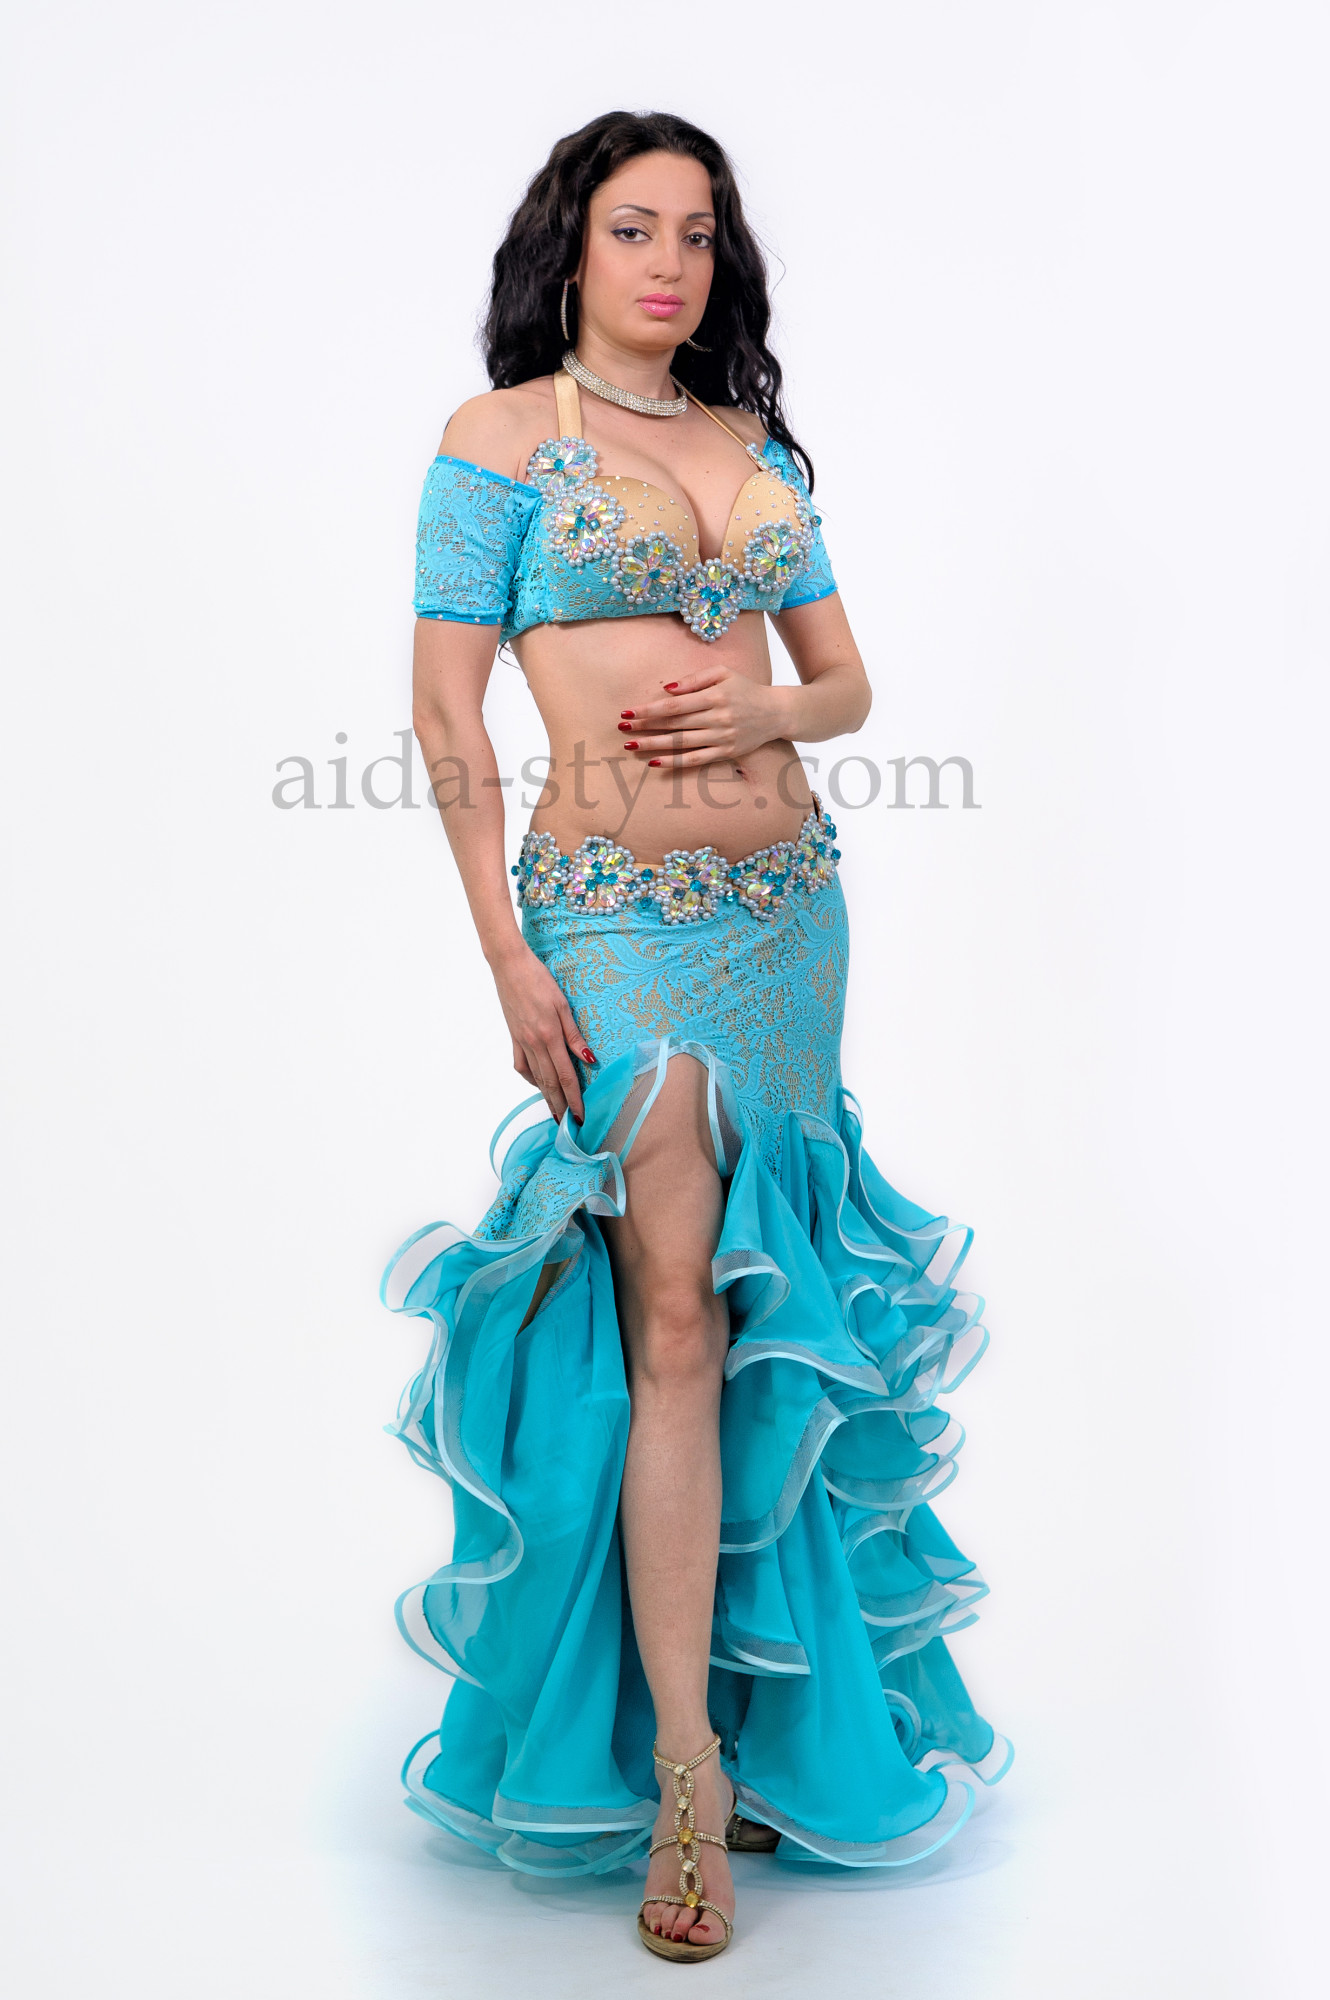 Beautiful blue professional belly dance dress with sleeves and ruffles on the skirt. The skirt has a cut on the right side